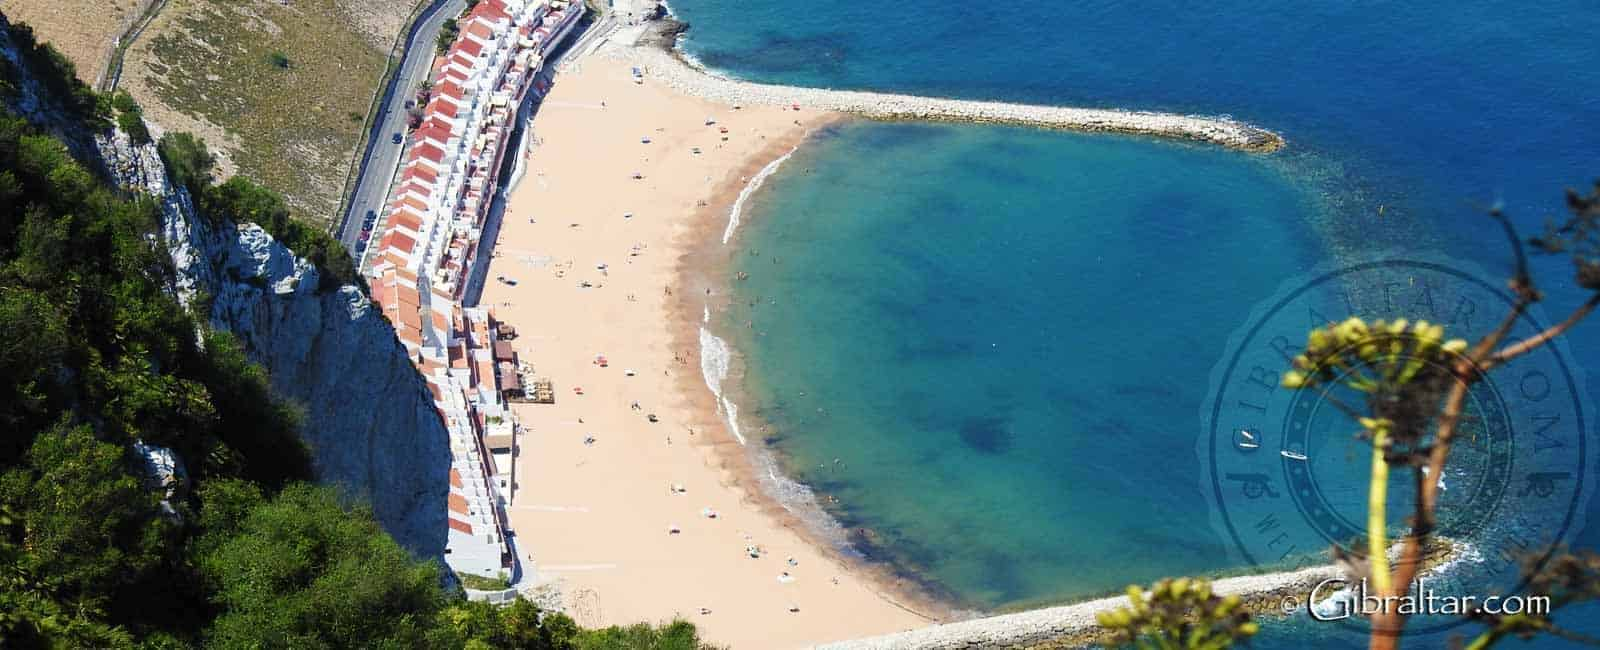 sandy-bay-beach-gibraltar